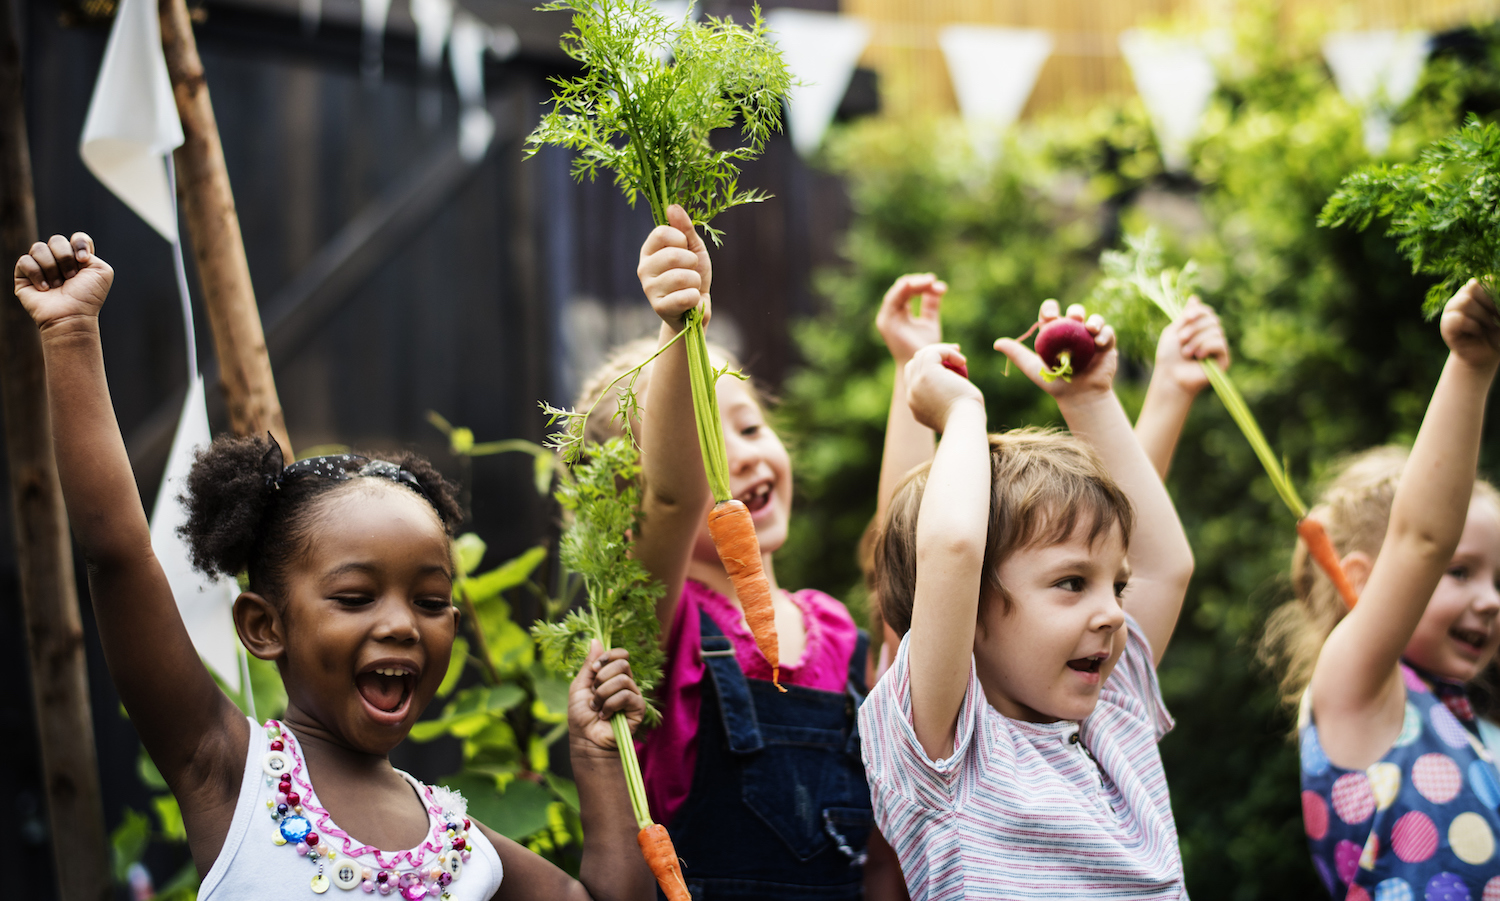 California Gov. Gavin Newsom announced a budget that proposes $80 million for school food programs serving more than 3.5 million children in the state